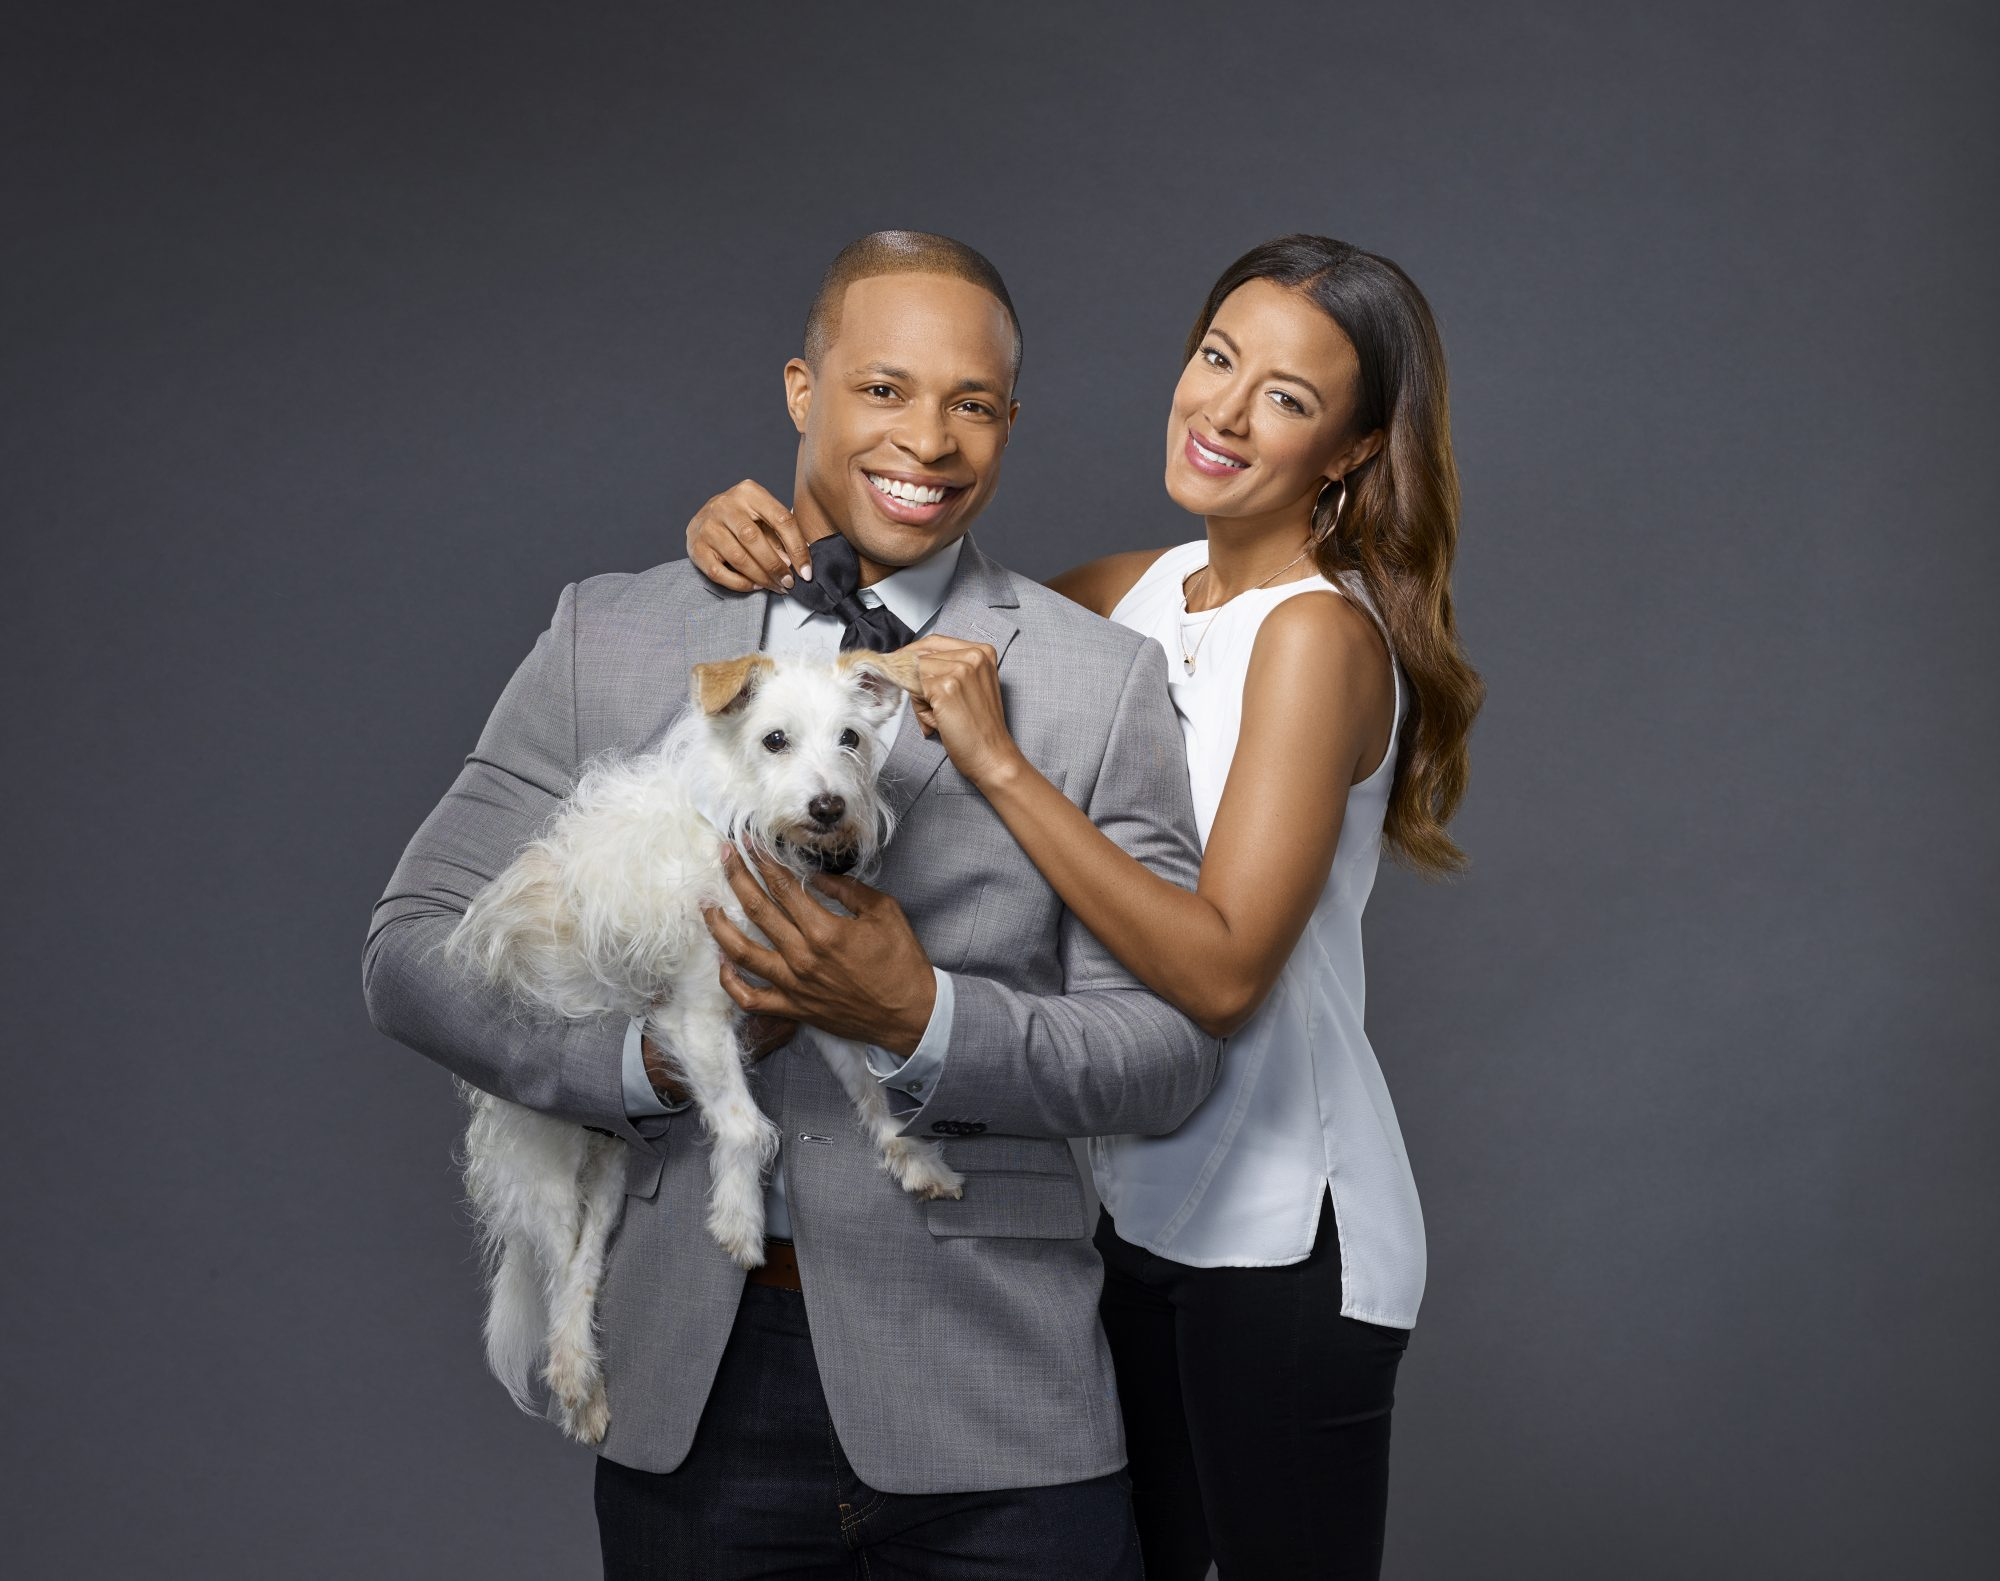 Heather Hemmens and Cornelius Smith Jr. with Dog